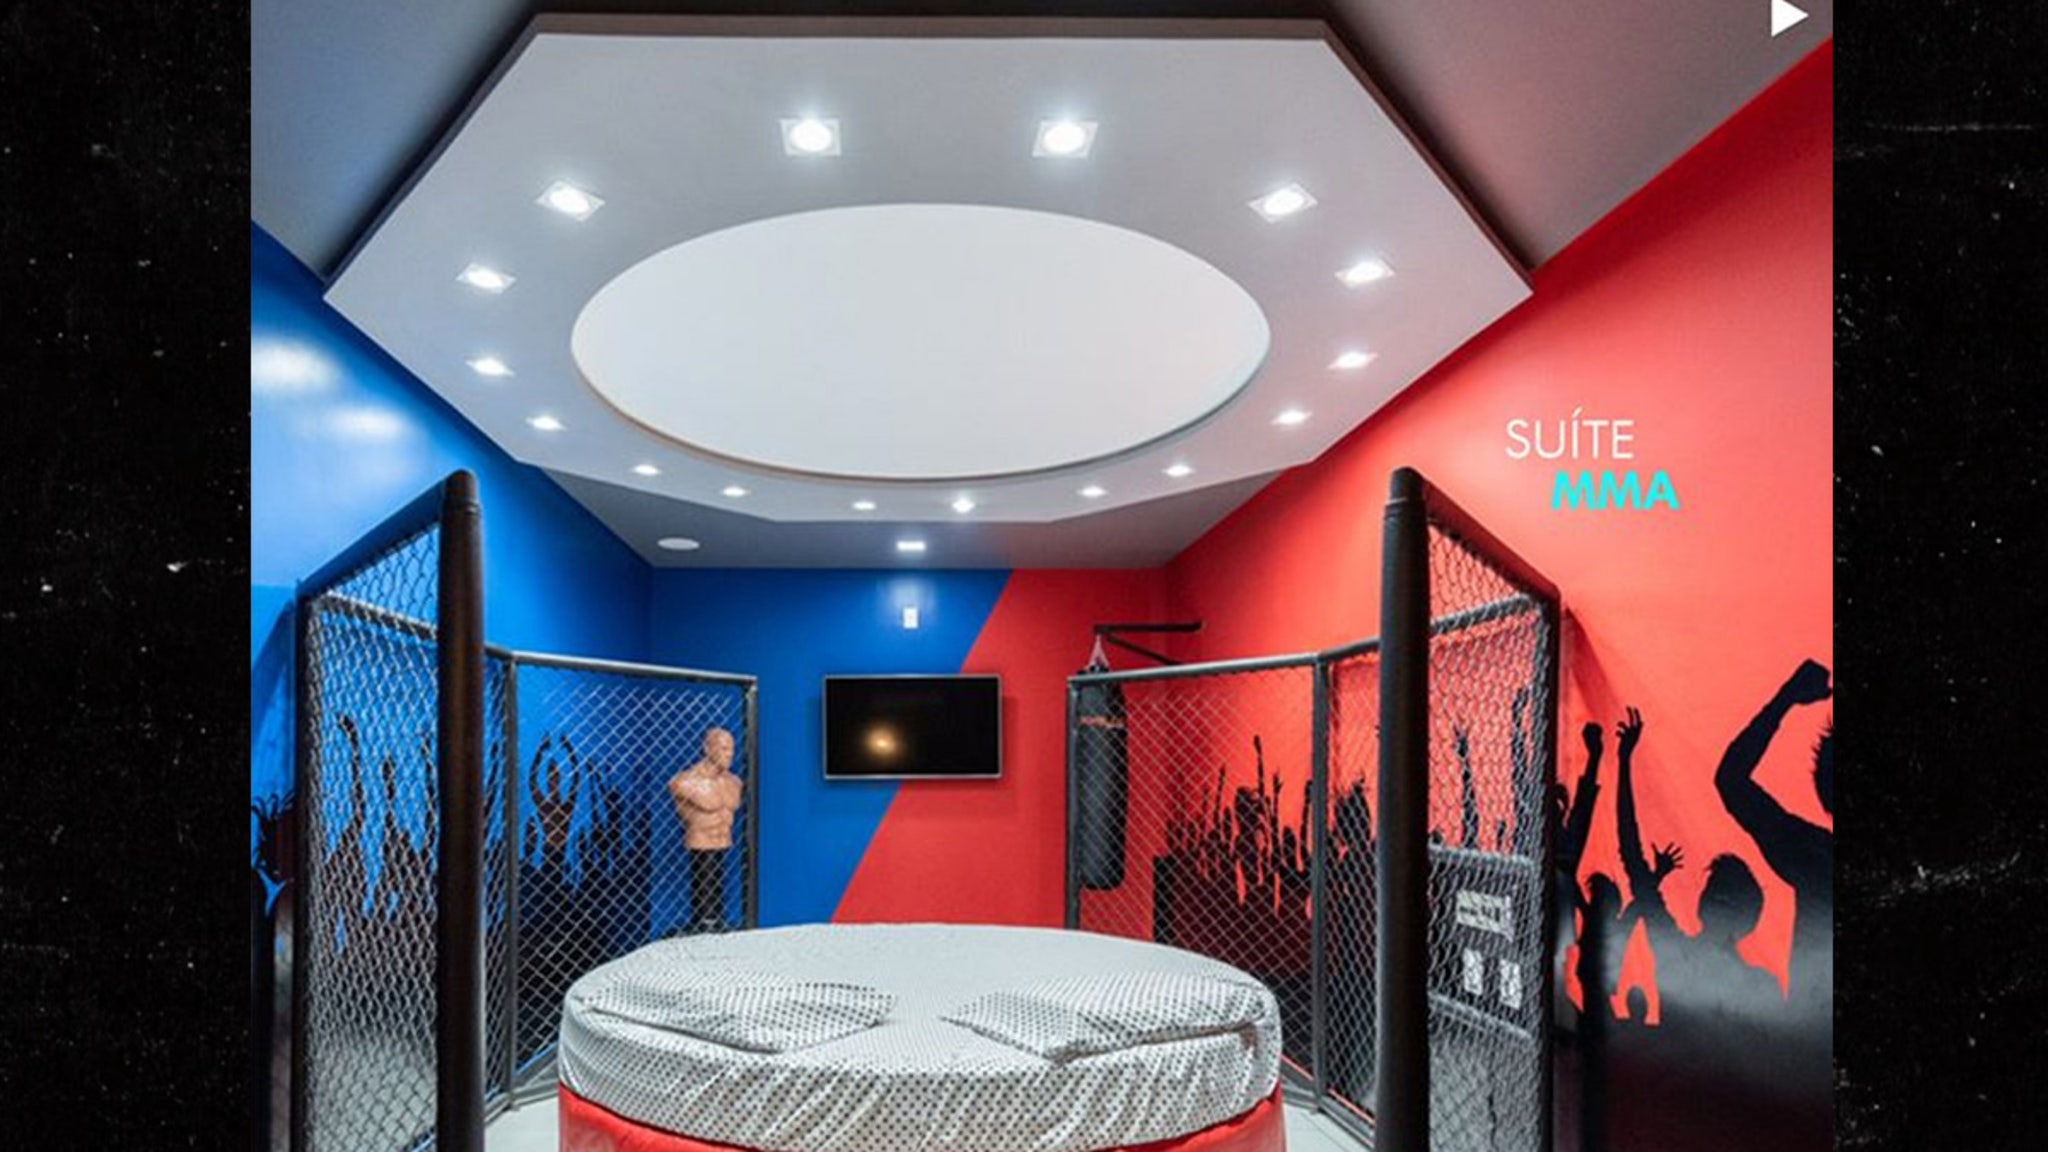 Brazil Sex Hotel Offers MMA Themed Room with Octagon Bed, Ground & Pound, Baby!